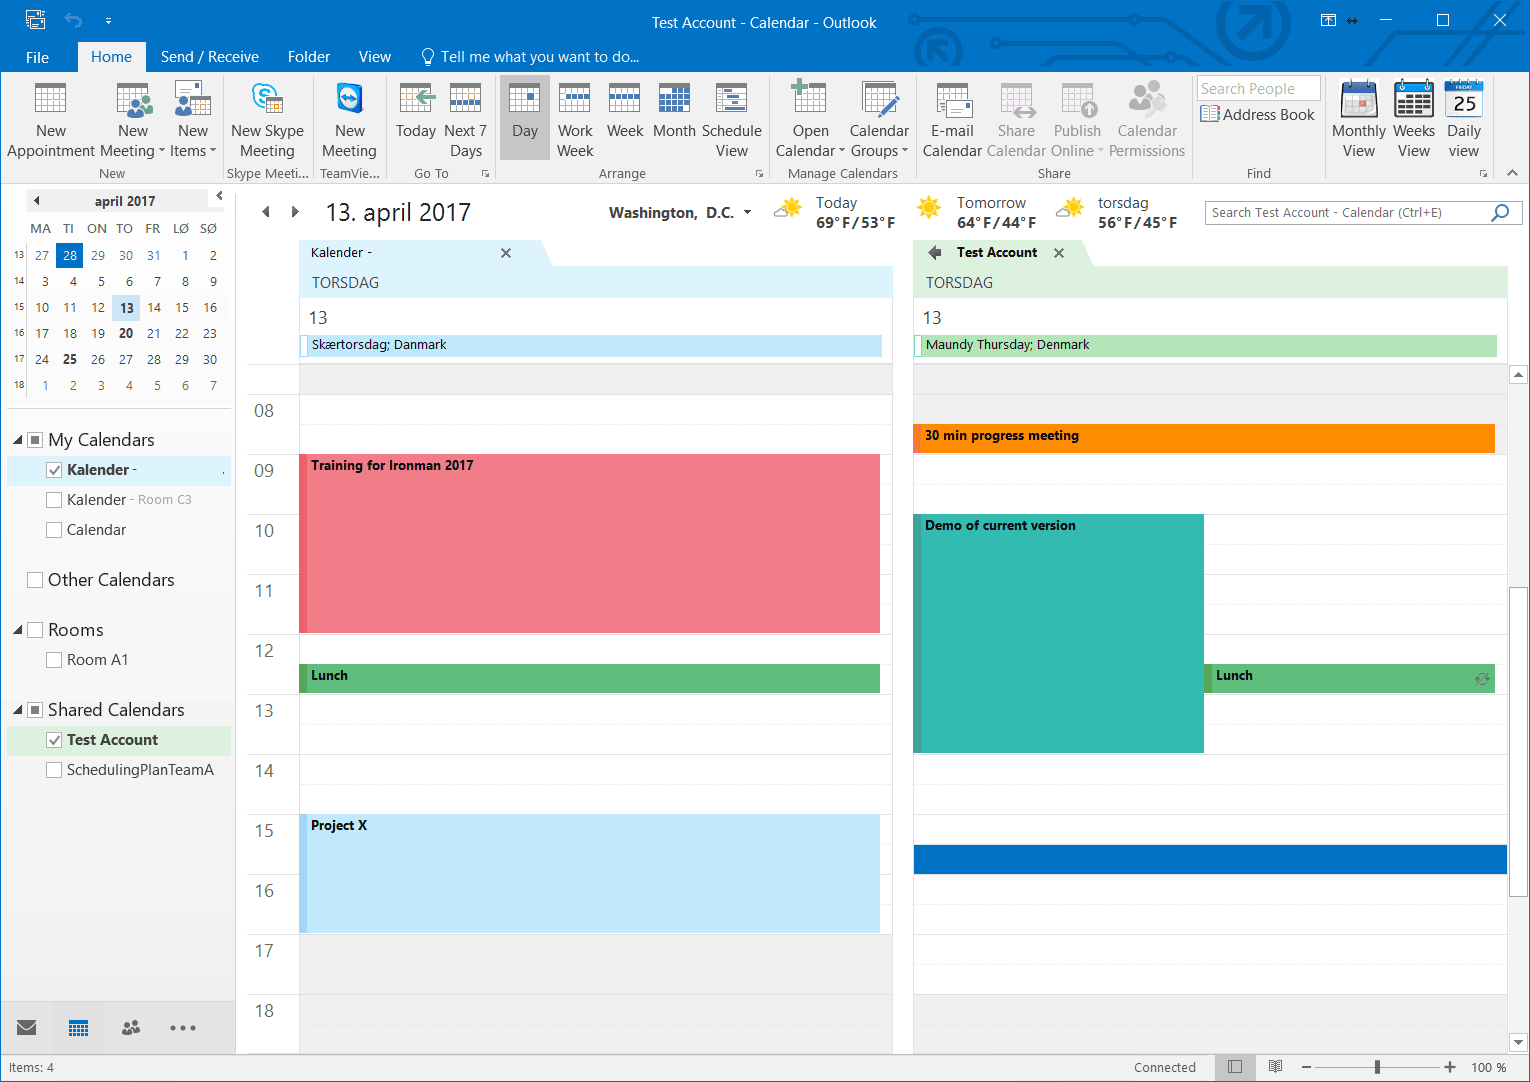 Year Calendar View In Outlook : Outlook printable calendar in a print